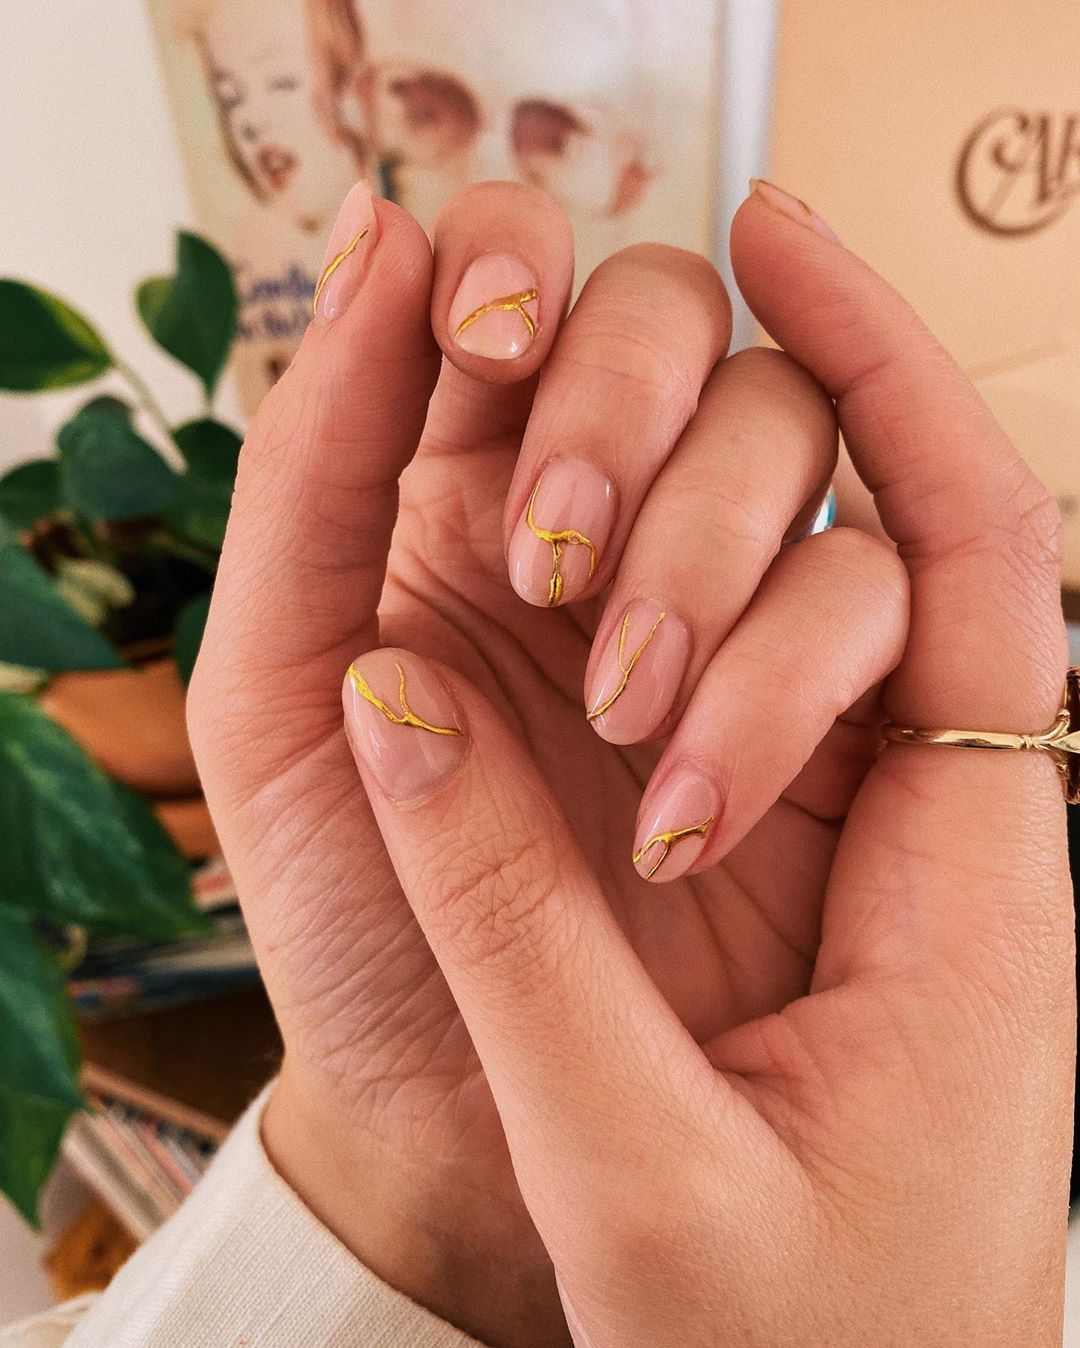 """emily jane lathan on Instagram: """"Kintsugi nails 🥣 the Japanese art of repairing broken pottery with gold. The repairs are visible and beautiful - bloomin gorgeous and…"""""""